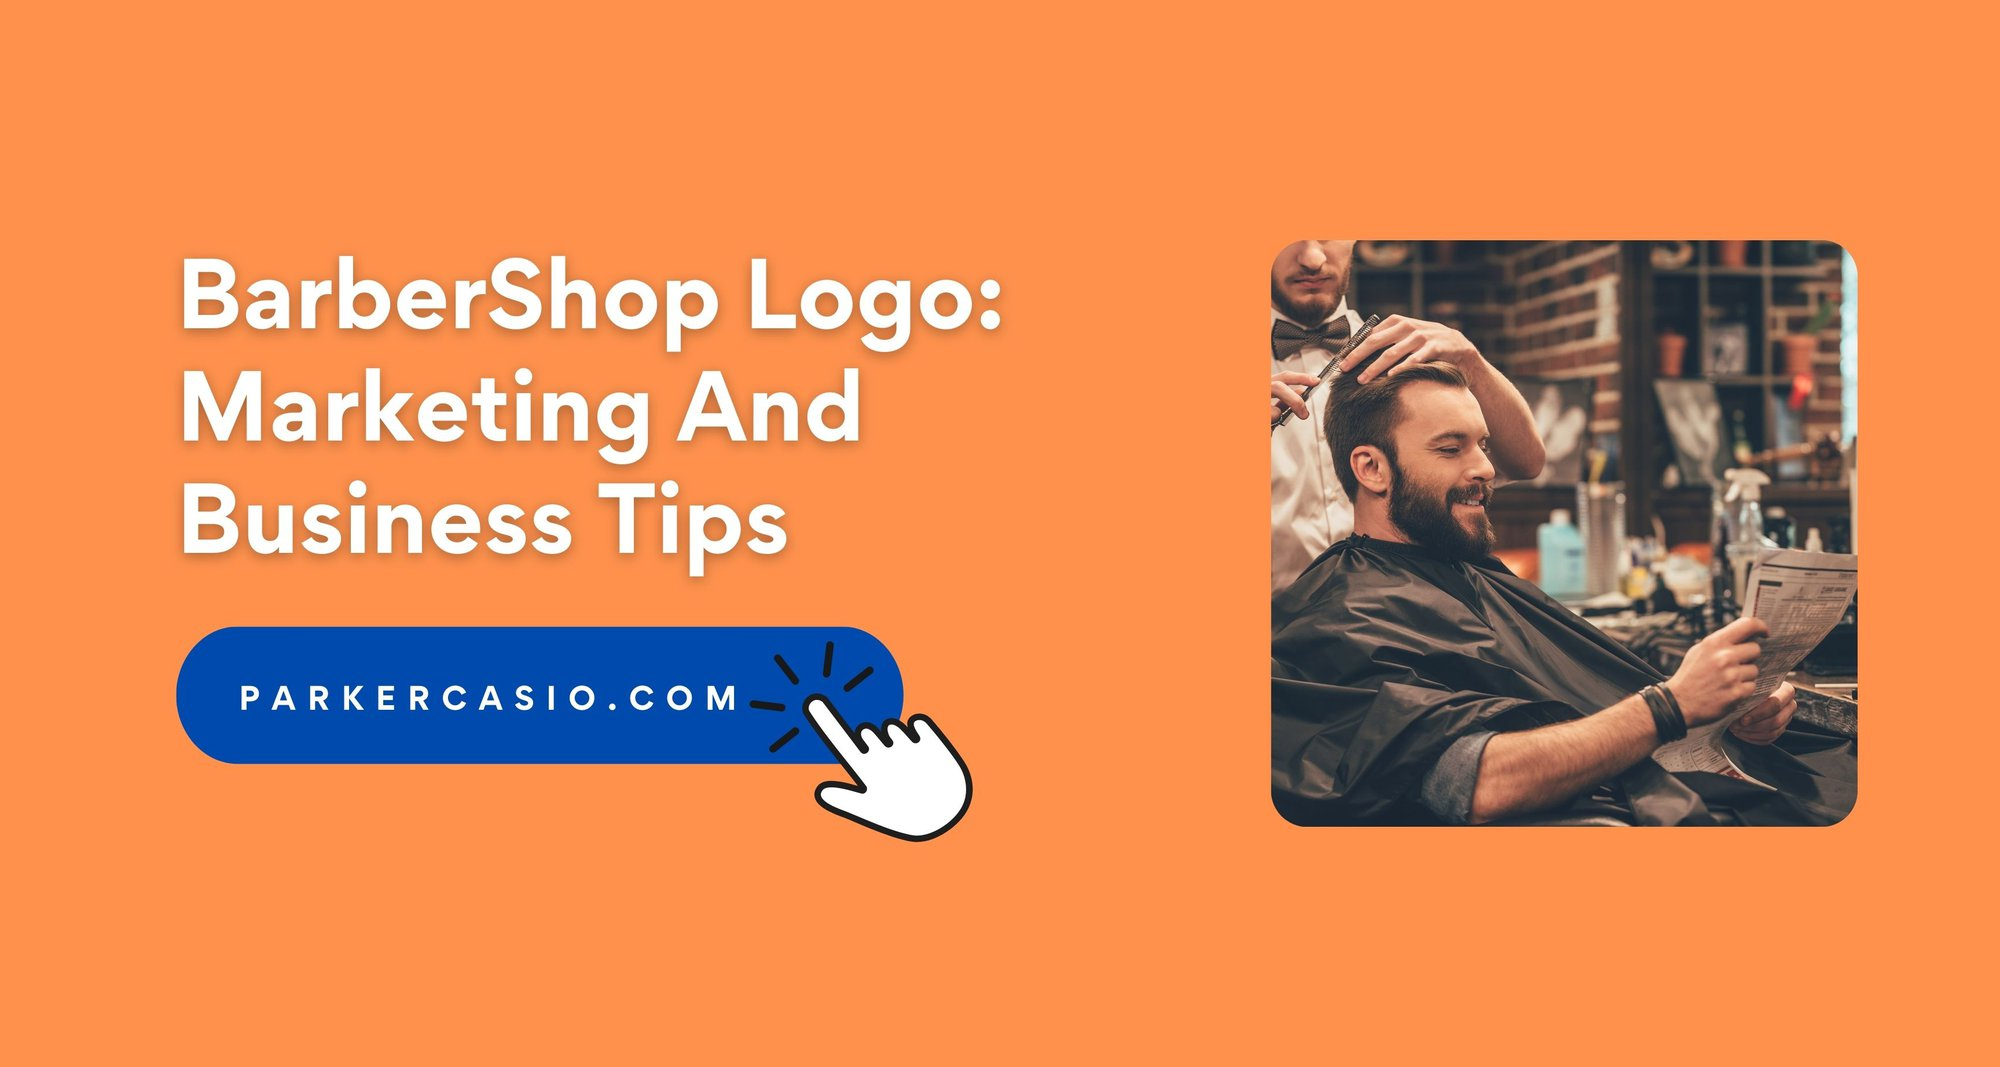 BarberShop Logo: Marketing And Business Tips